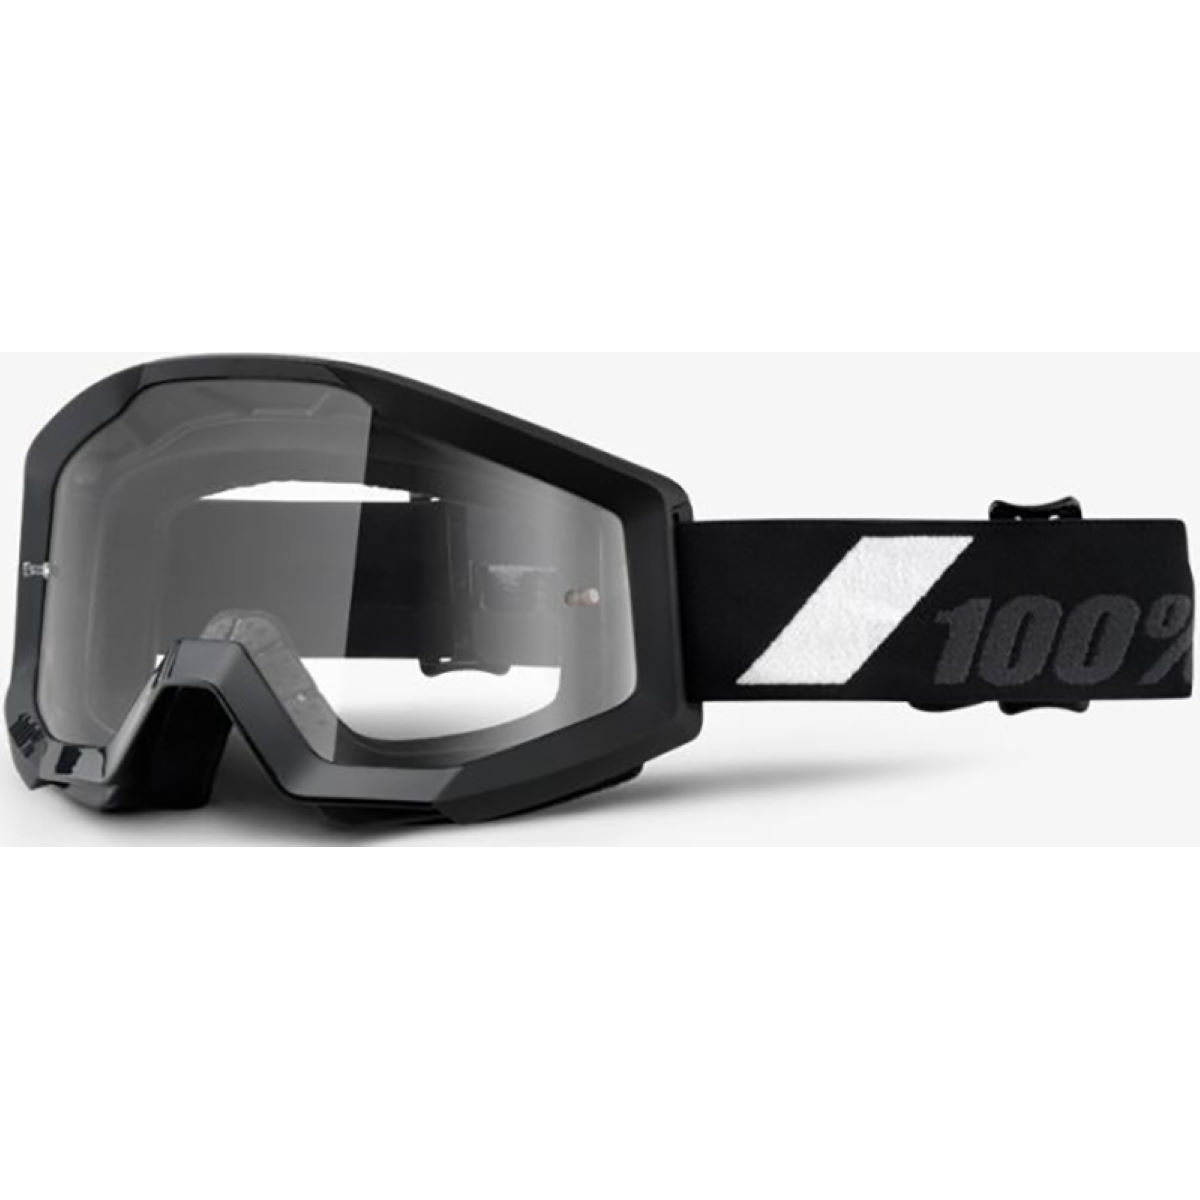 100% Strata Goggles - One Size Goliath - Clear Lens